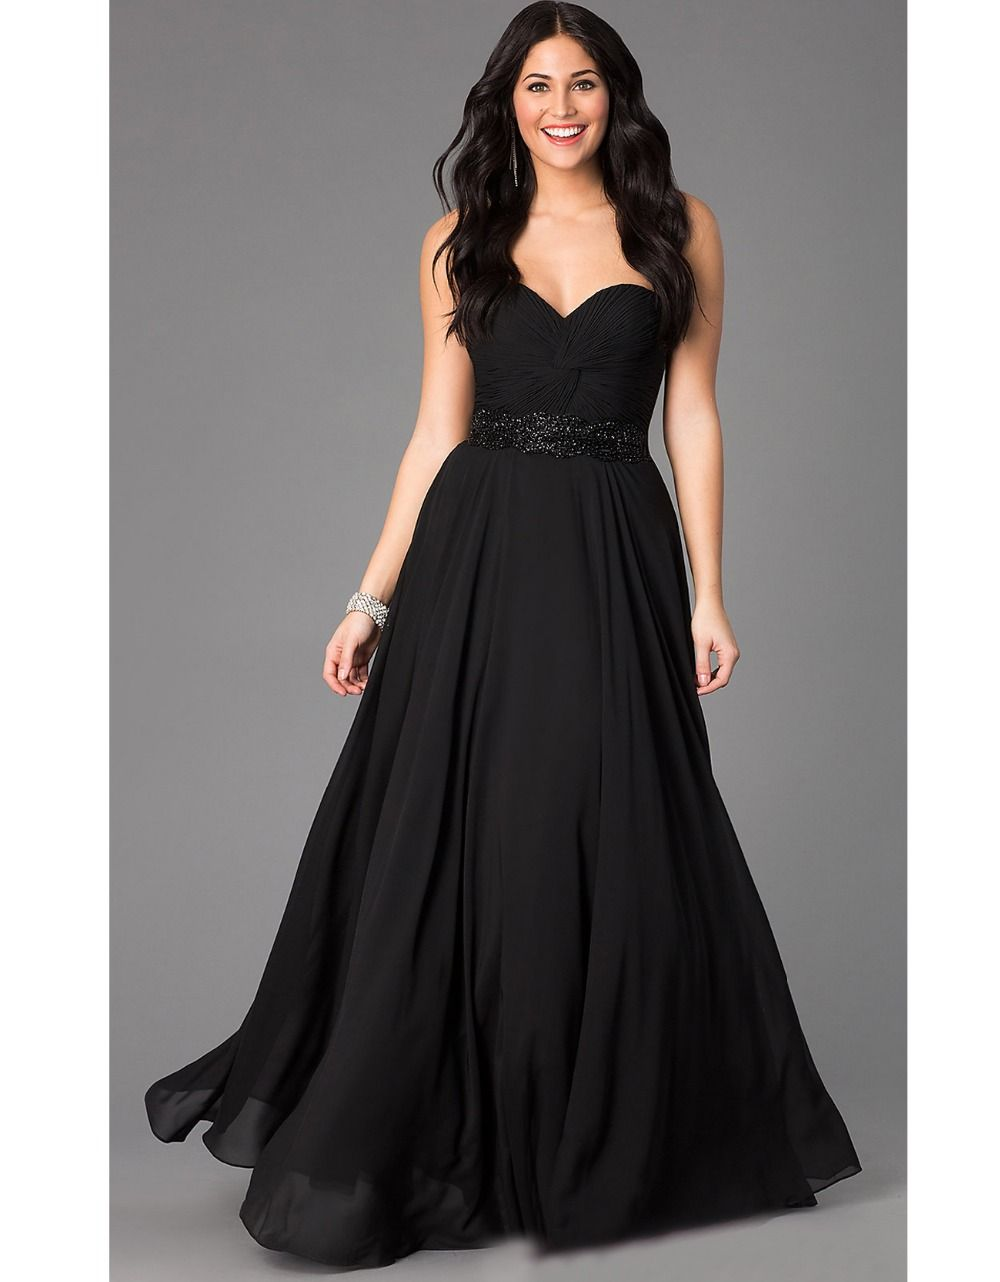 38a50cf8407 long black masquerade dress prom abendkleider 2015 crystal plus size women  formal dress backless evening gown robe de bal PT 355